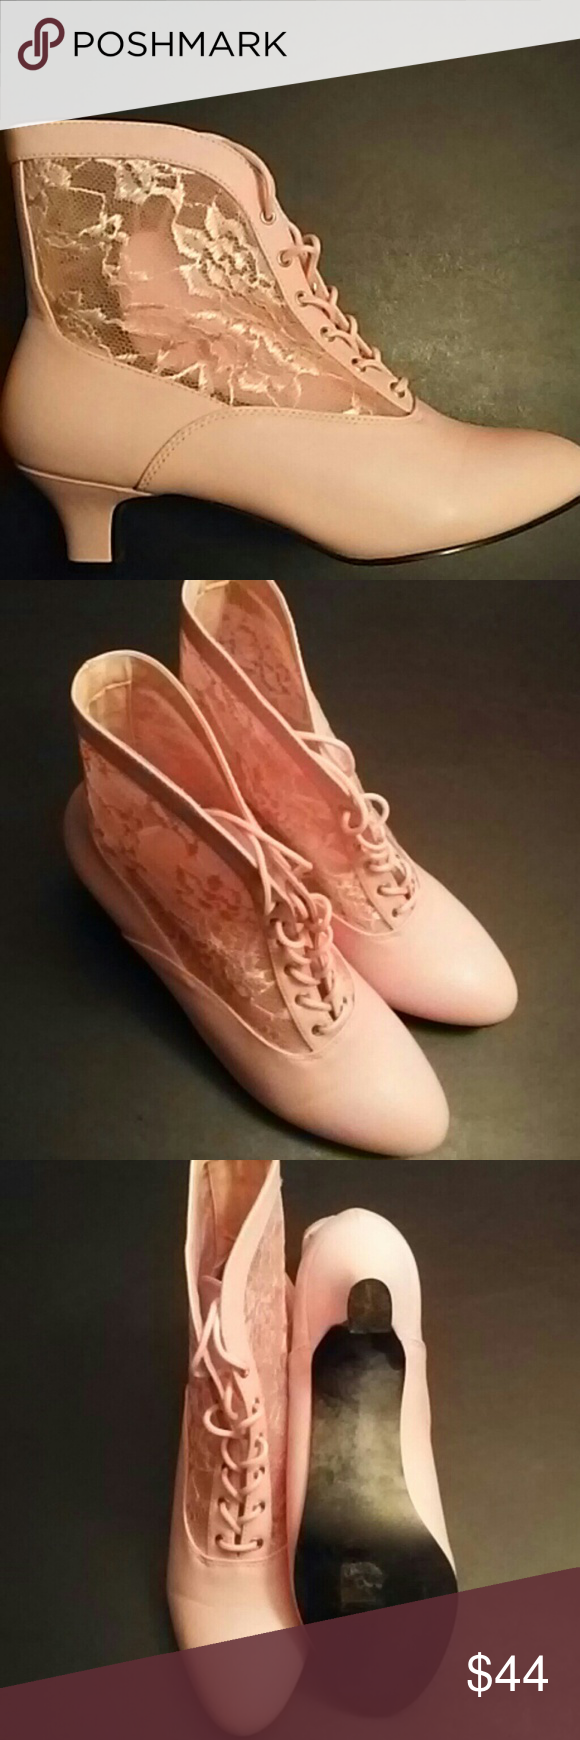 "Victorian Lace Booties Stunning Pink victorian style lace up booties with 2"" heel. Very comfy and true to size. Wore a couple of times In great condition, no stains or tears. Funtasma Shoes Ankle Boots & Booties"